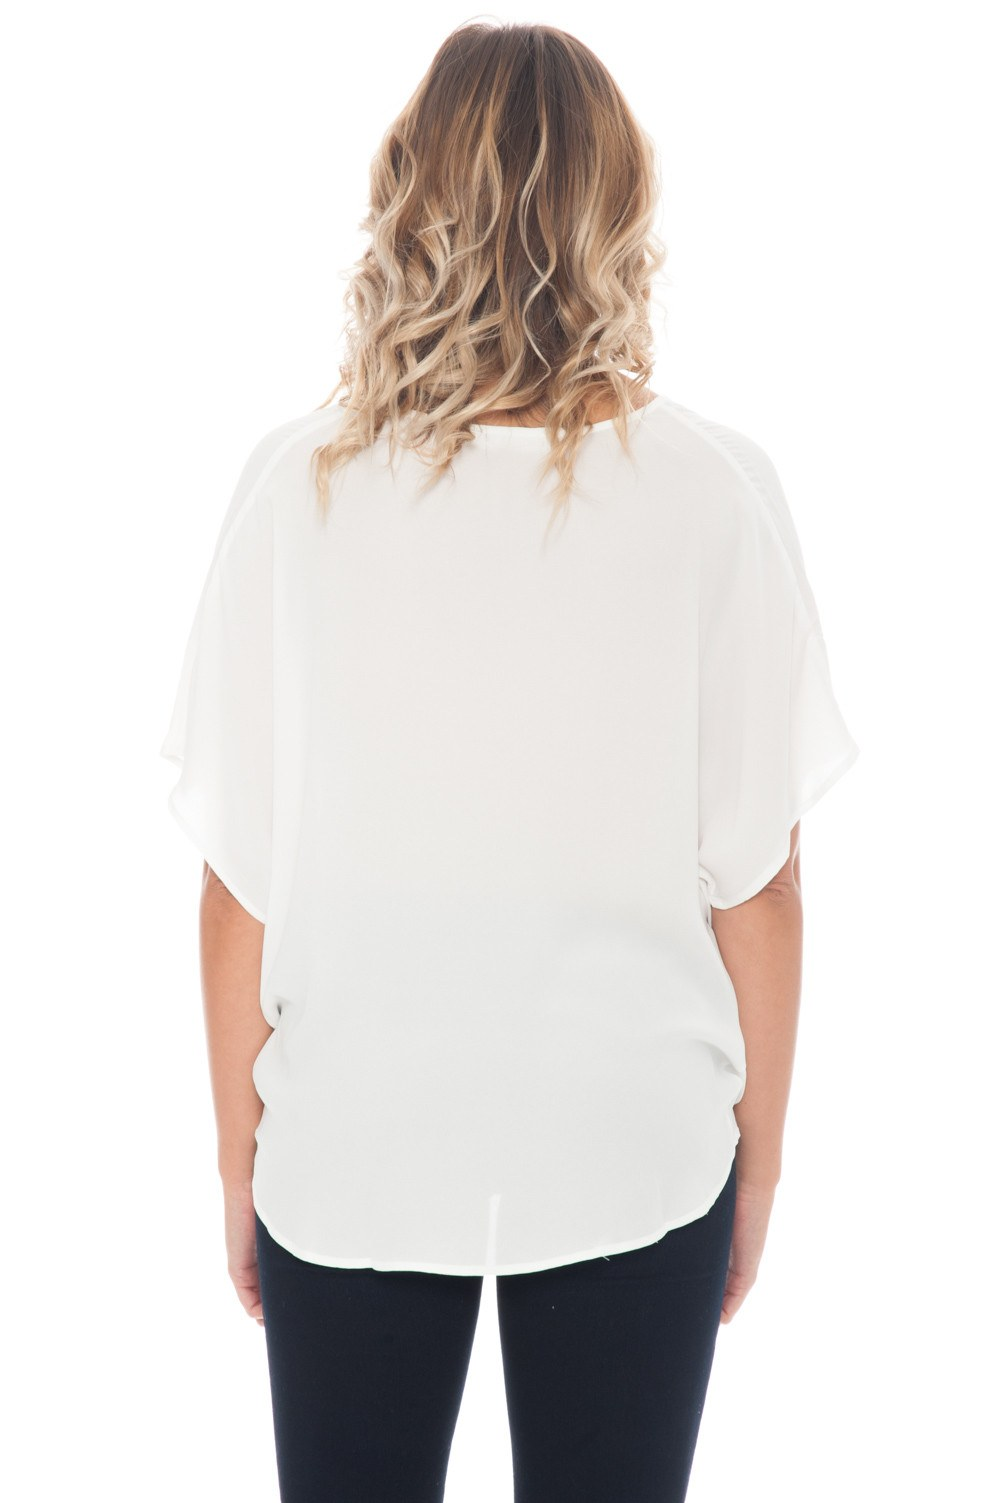 Top - Shear Cream Top With Front Detail - 3